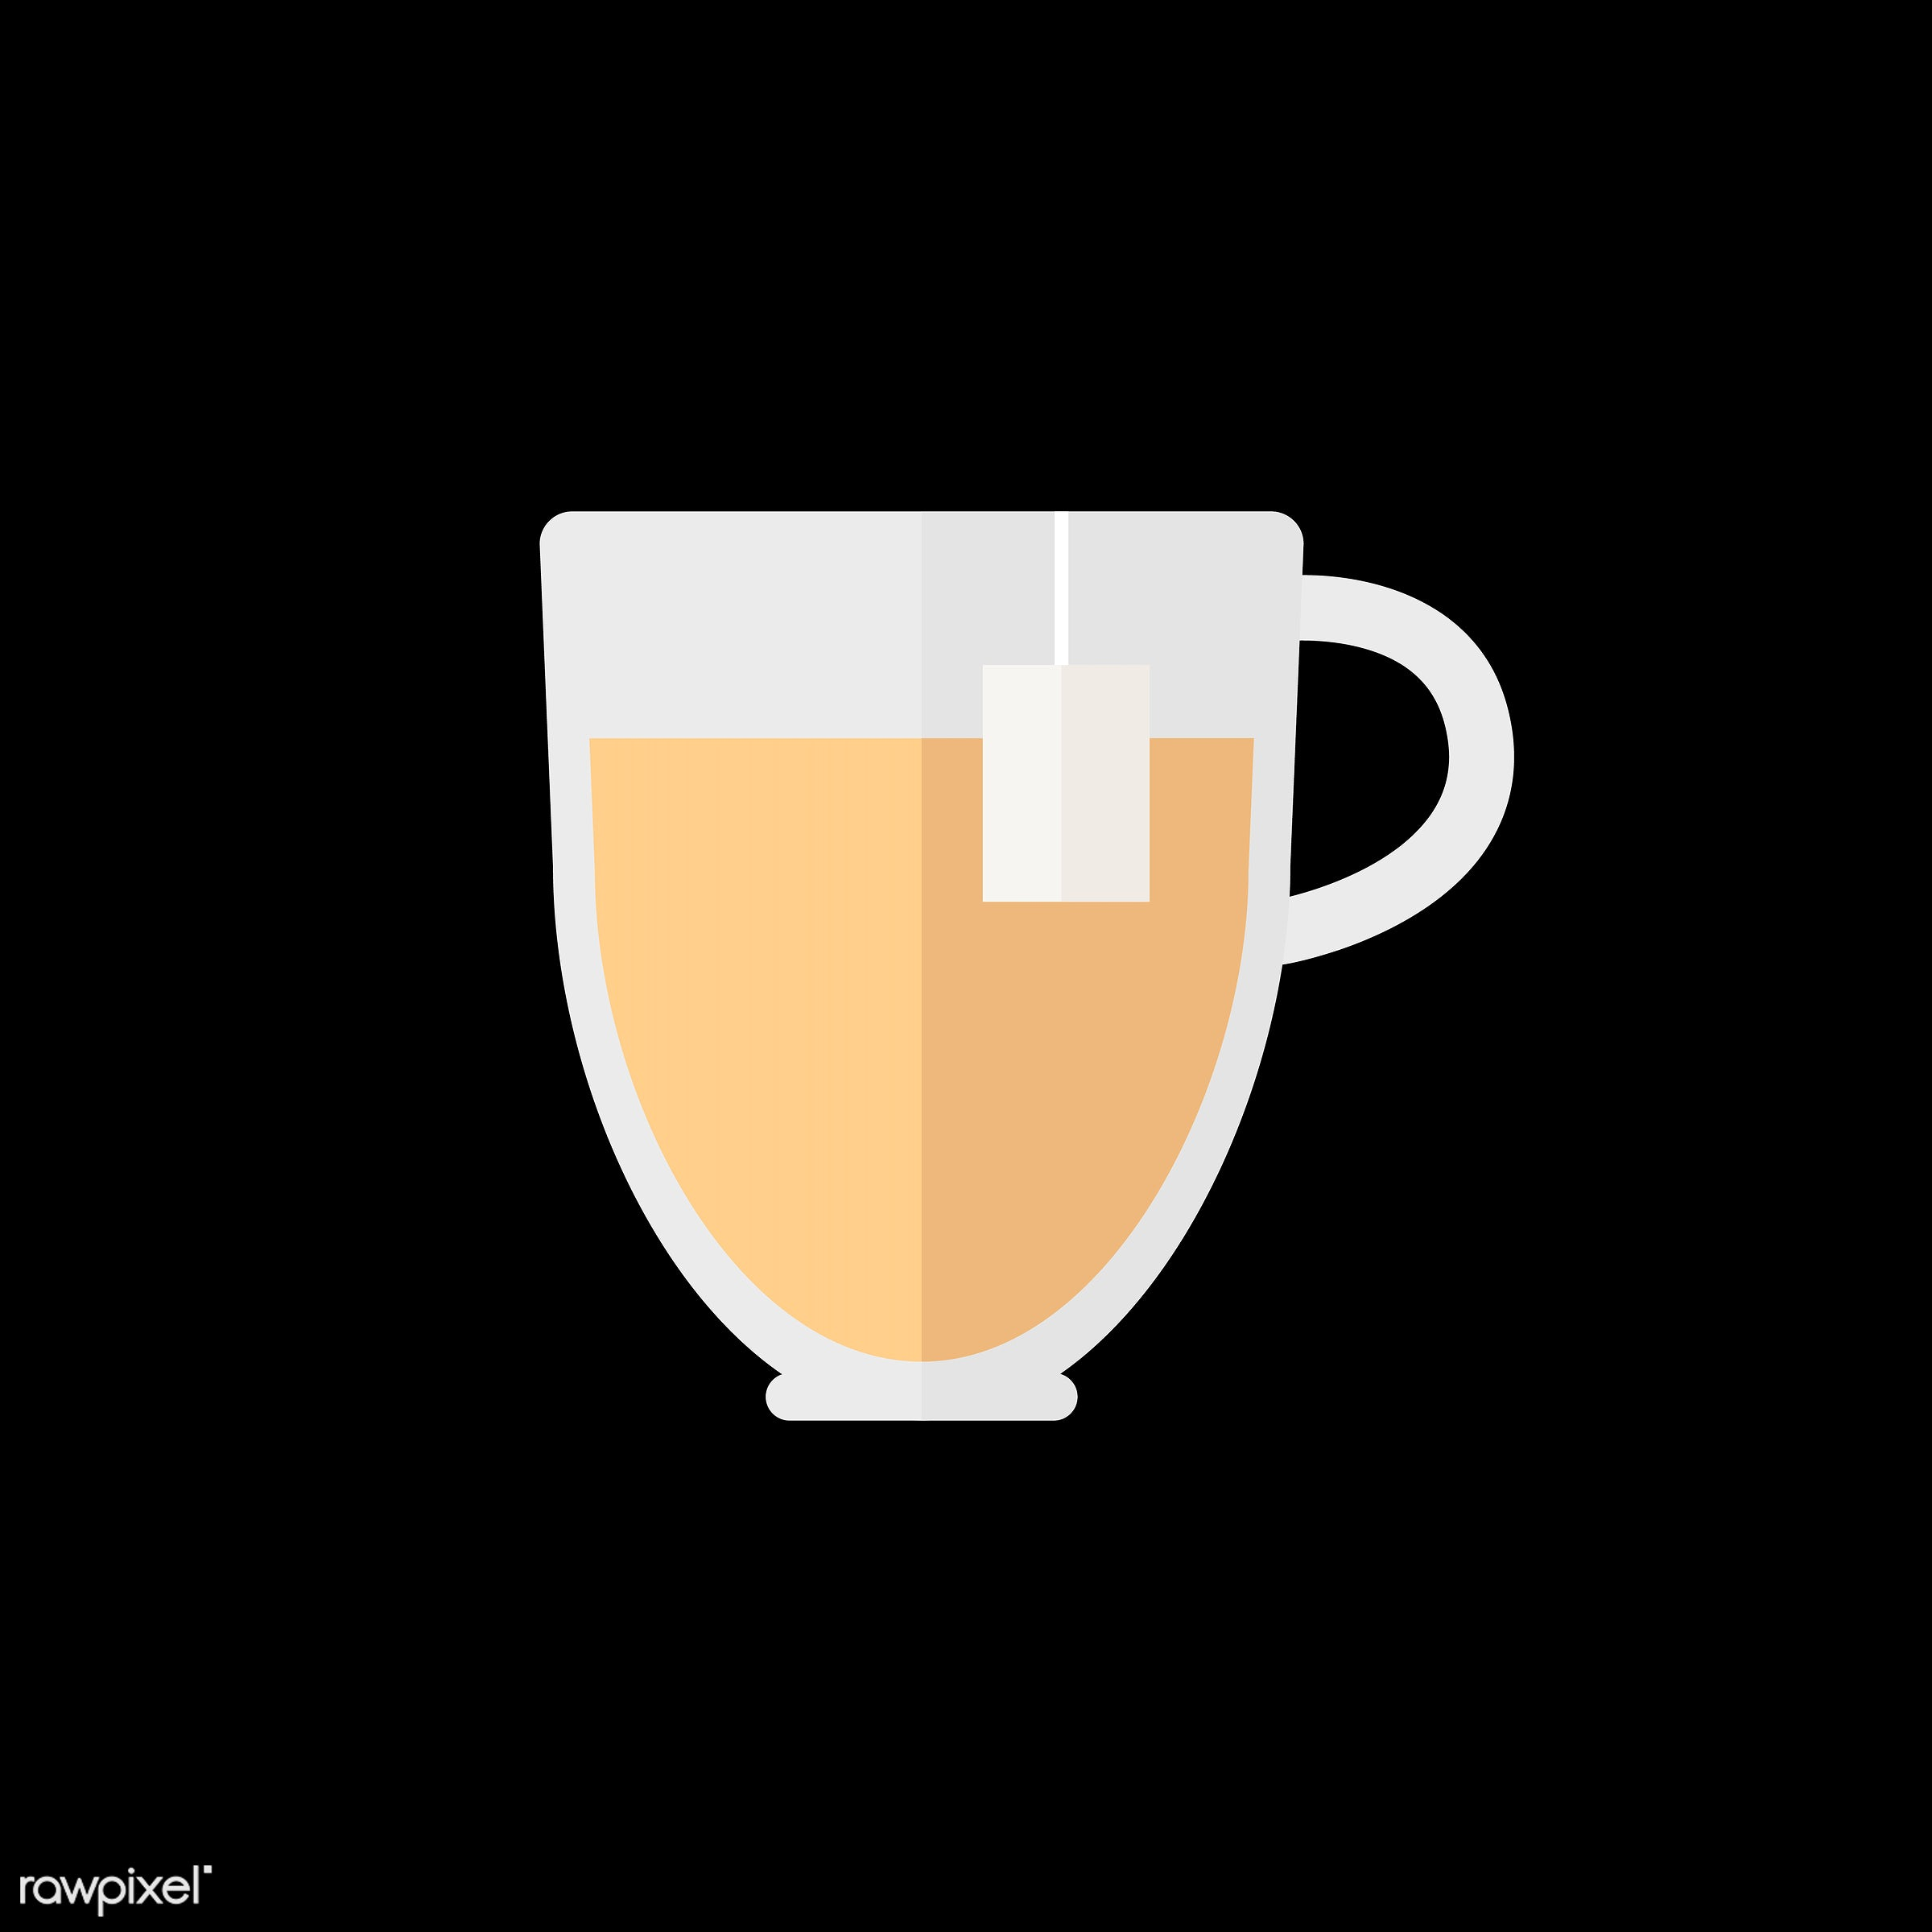 vector, graphic, illustration, icon, symbol, colorful, cute, mug, tea, tea cup, hot drink, drink, beverage, water, tea bag